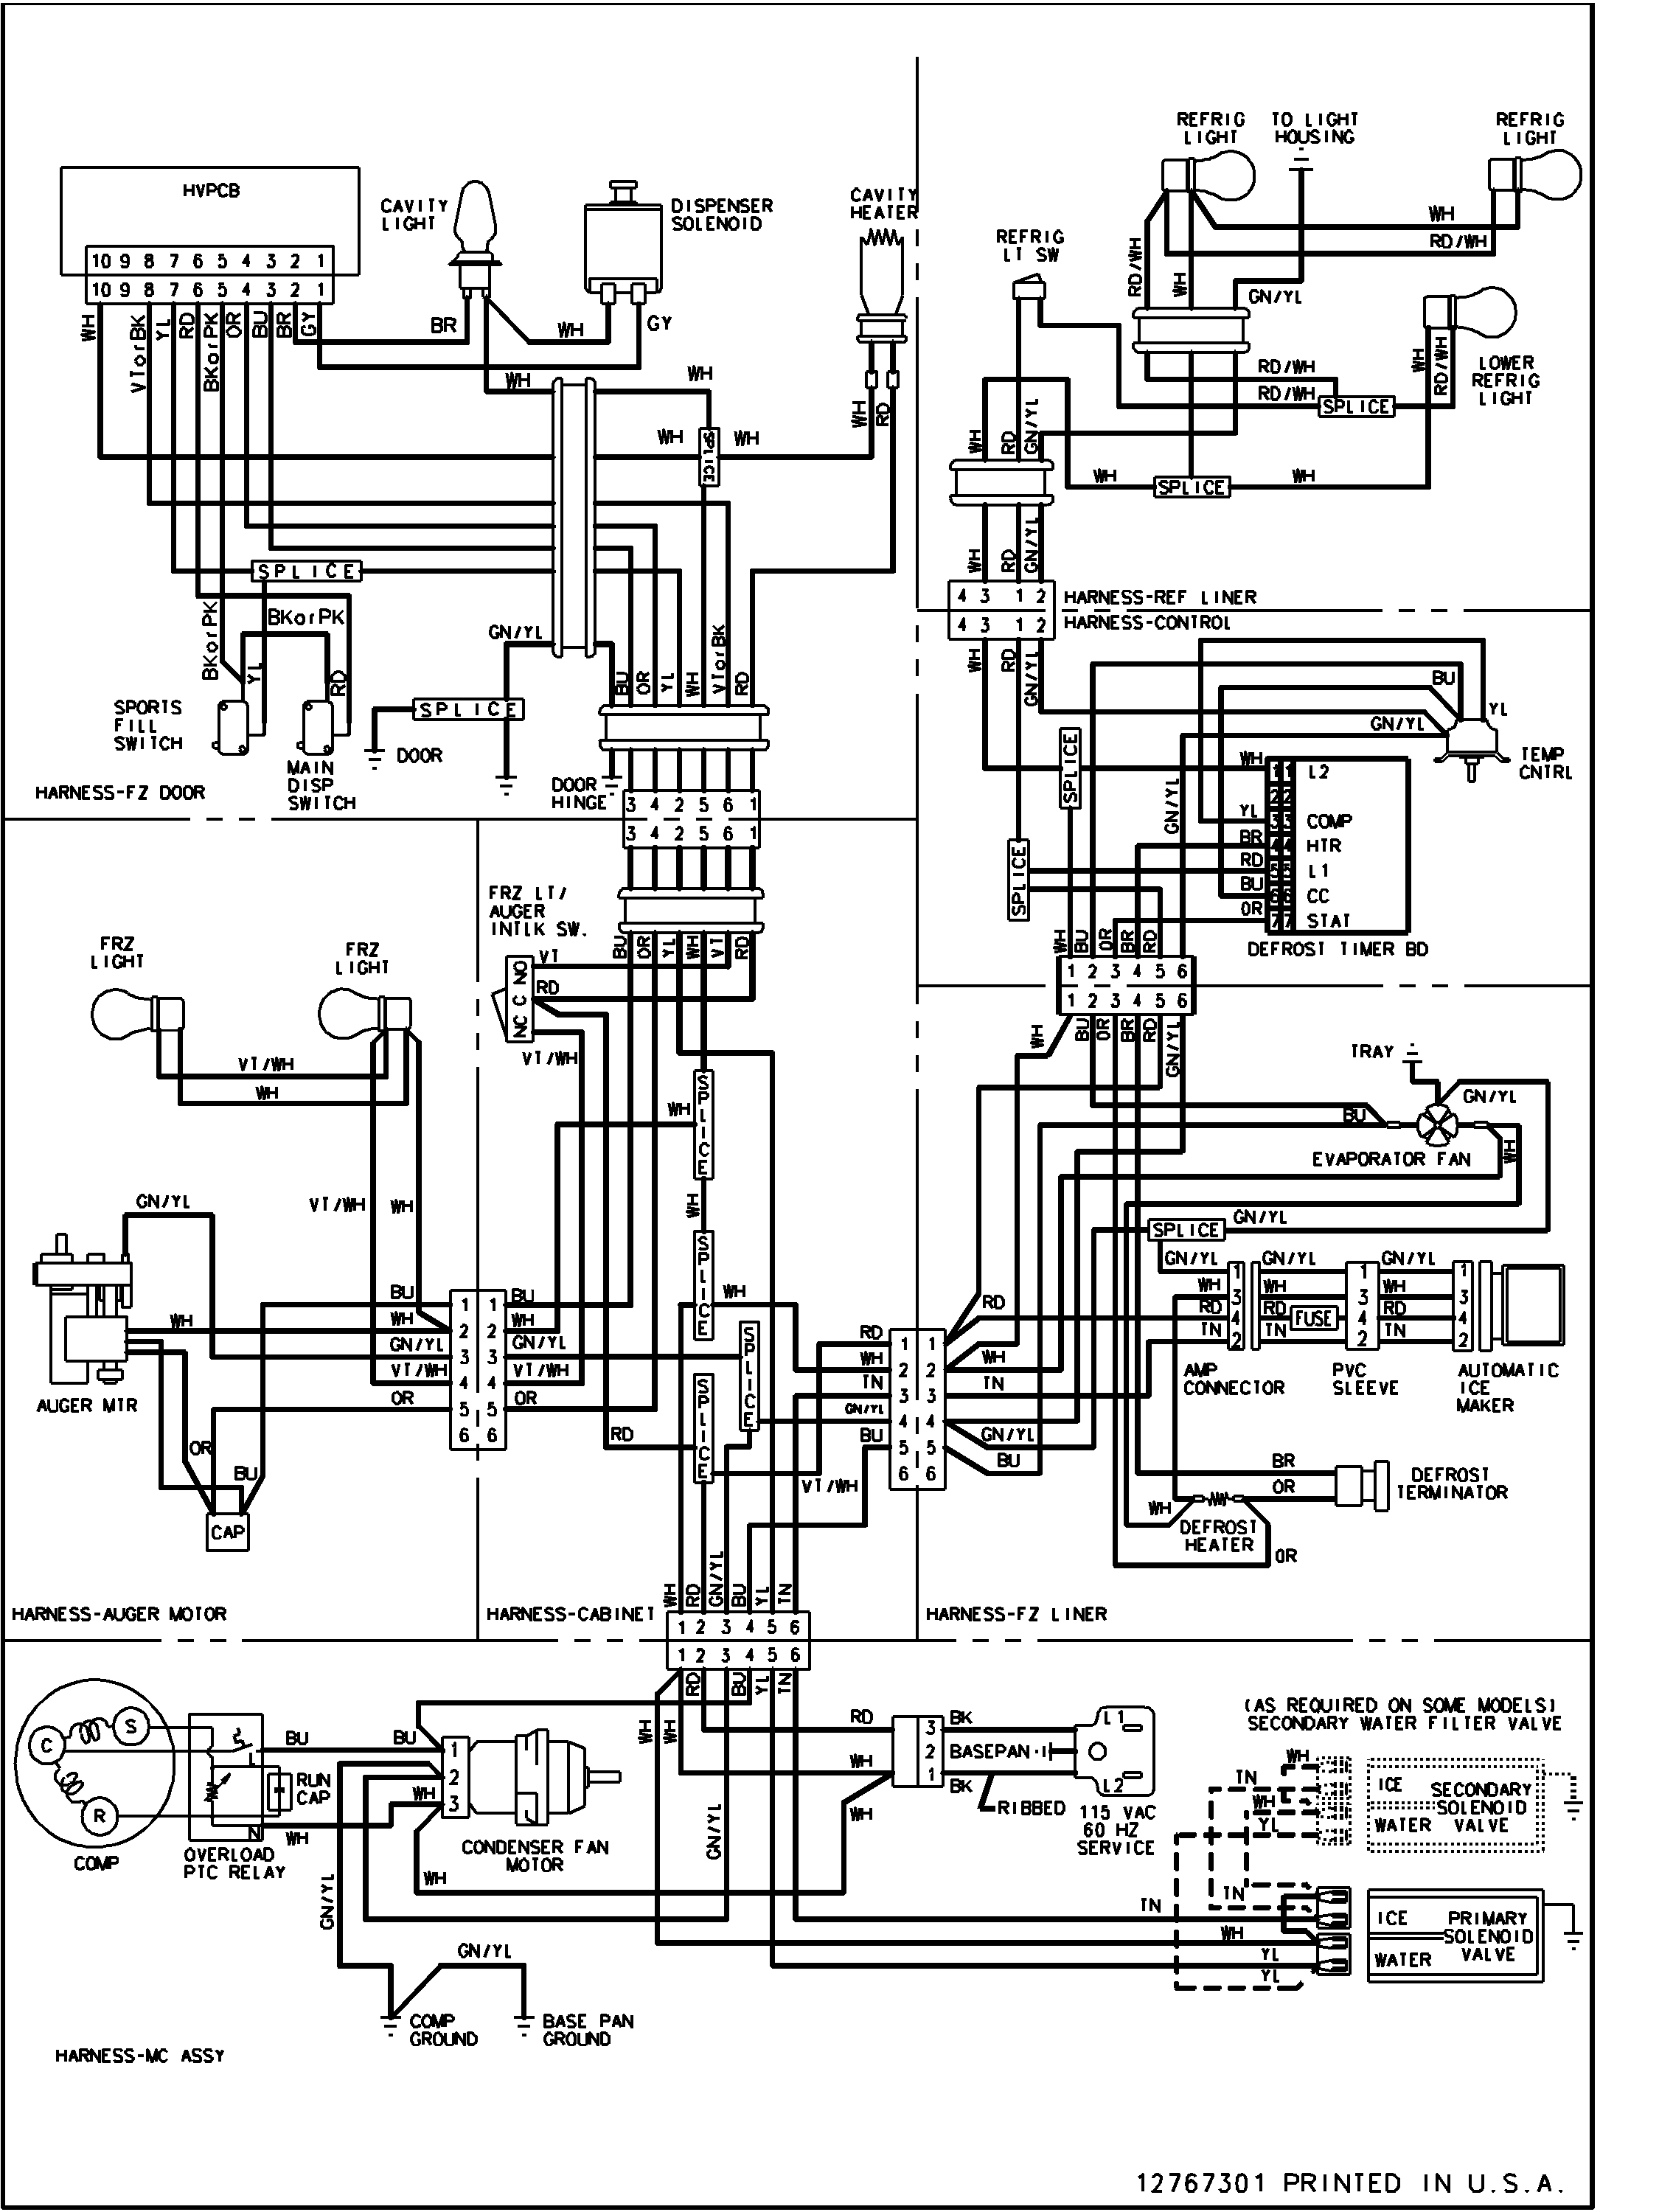 Luxaire Wiring Diagrams Opinions About Diagram Heat Pump Replacement Parts Electrical Schematic For F5fp048 Thermostat